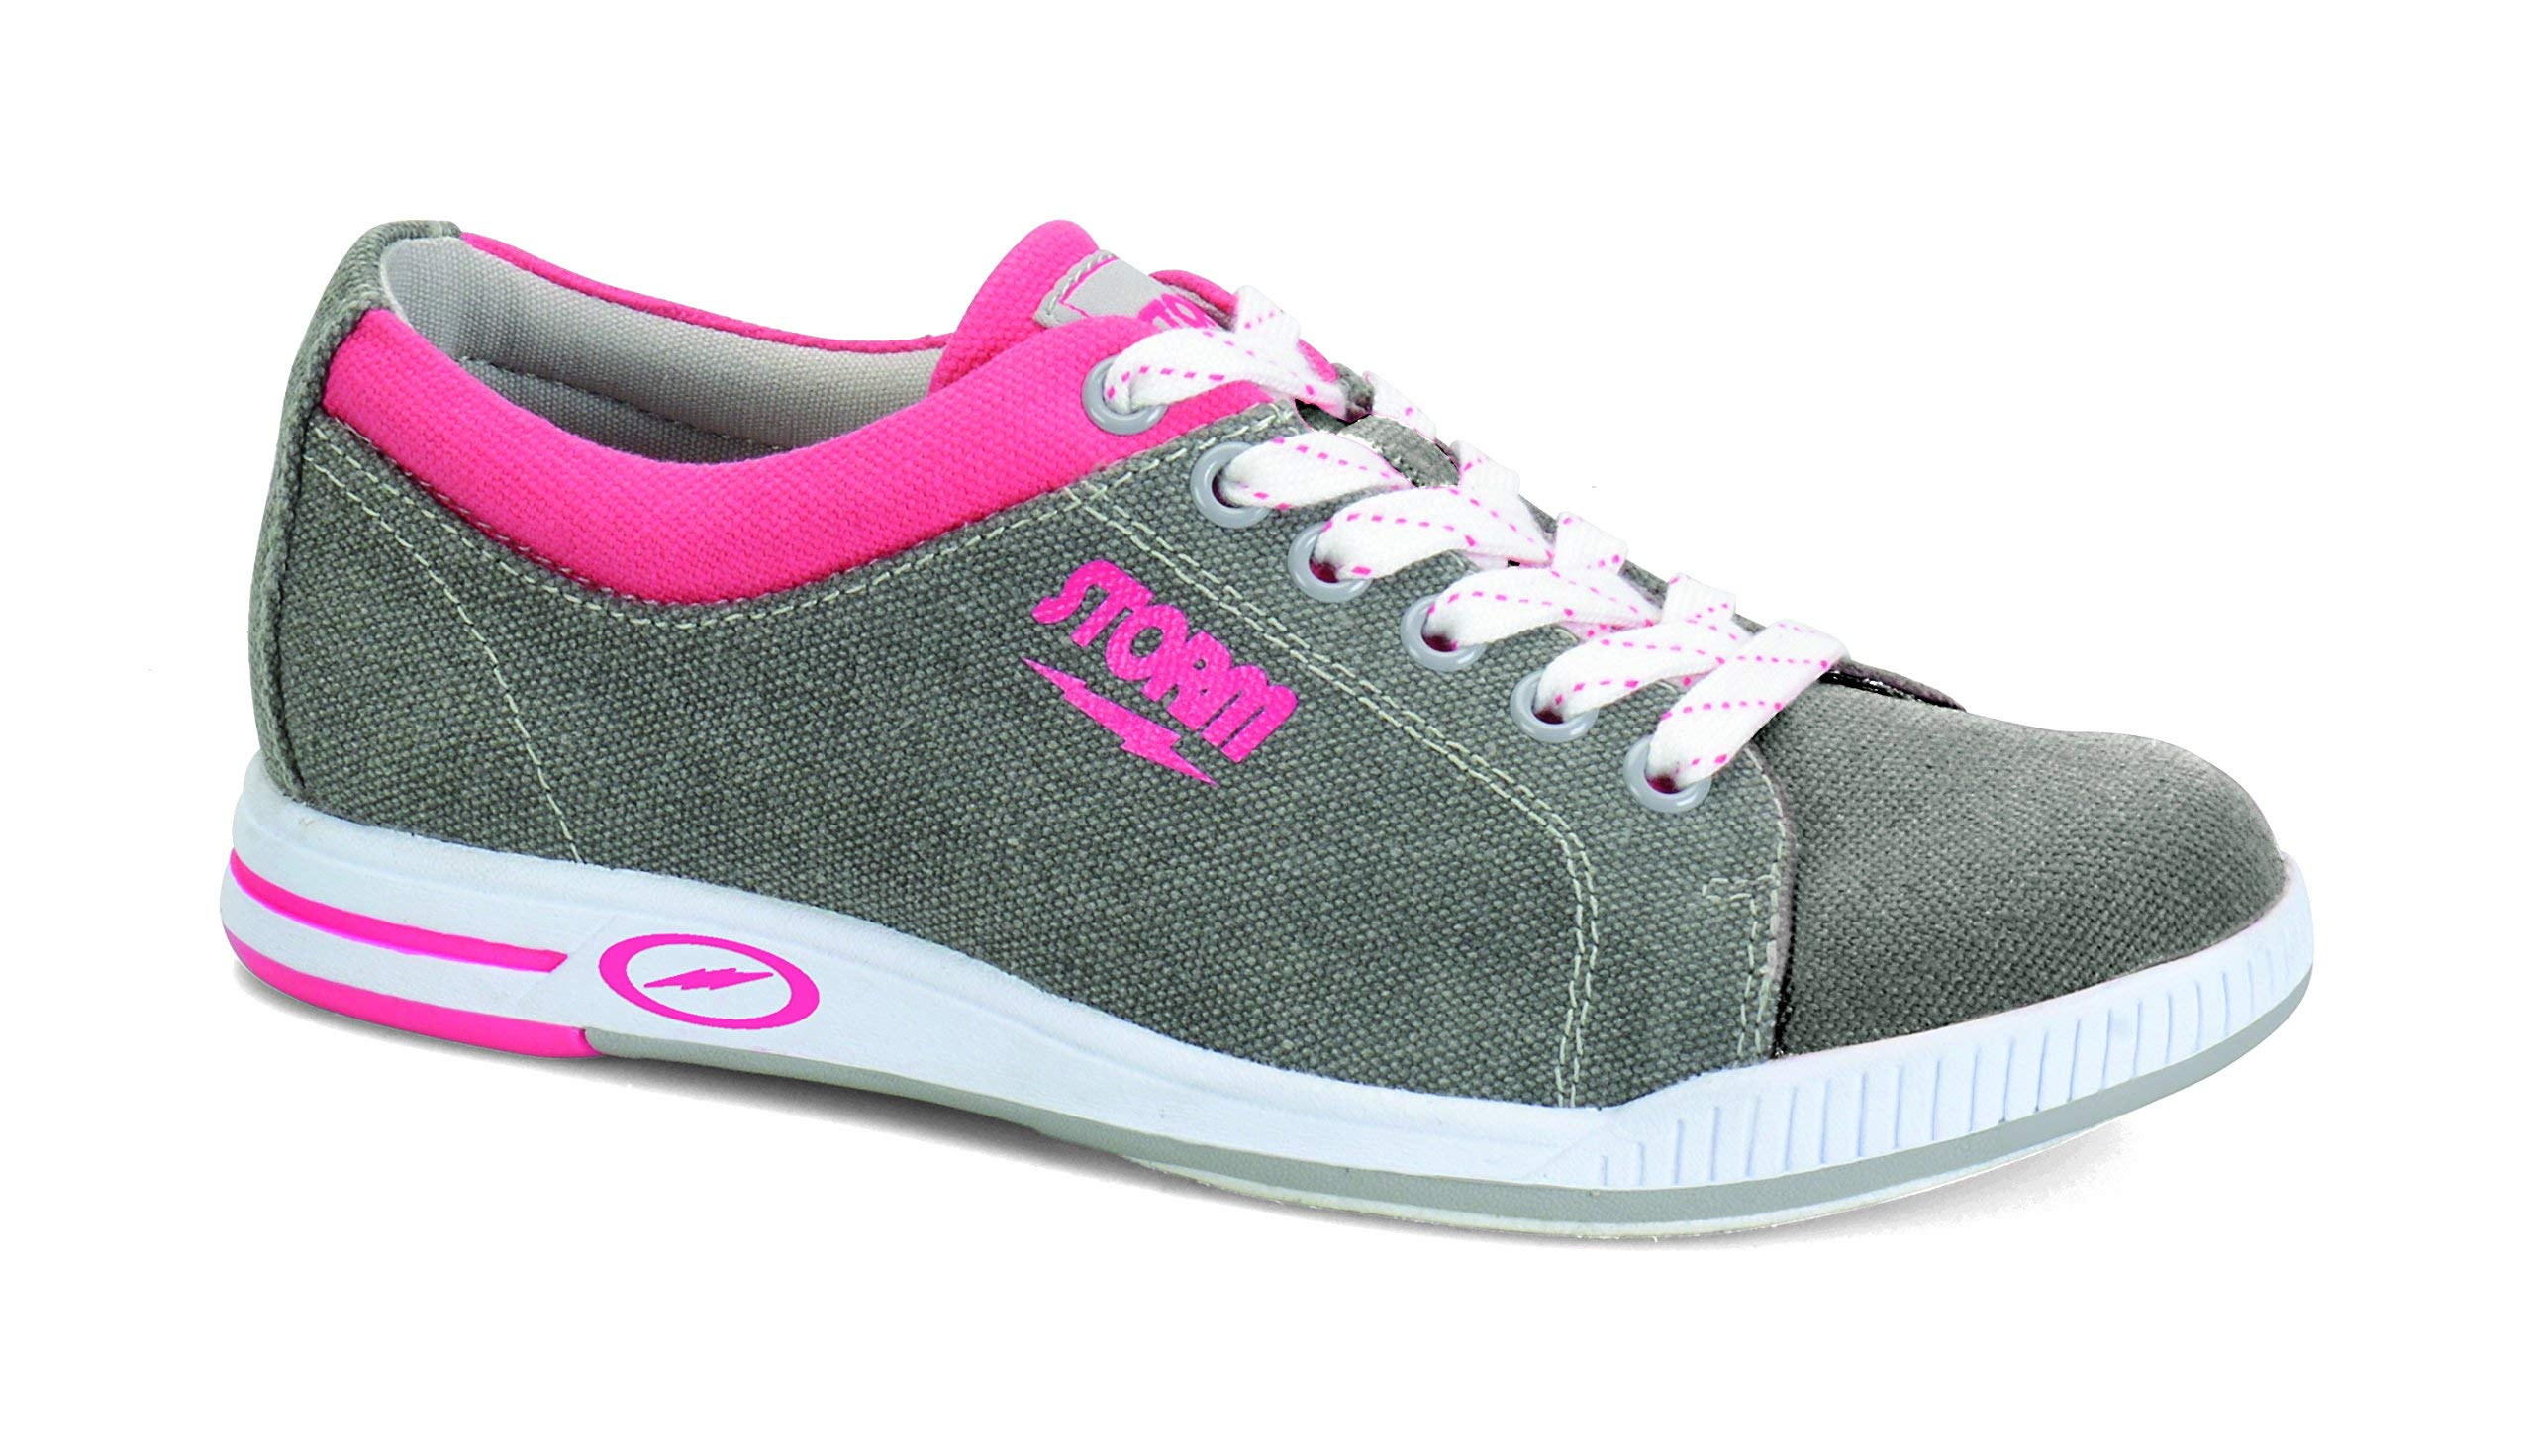 Storm Meadow Bowling Shoes, Grey/Pink, 10.0 (Renewed)